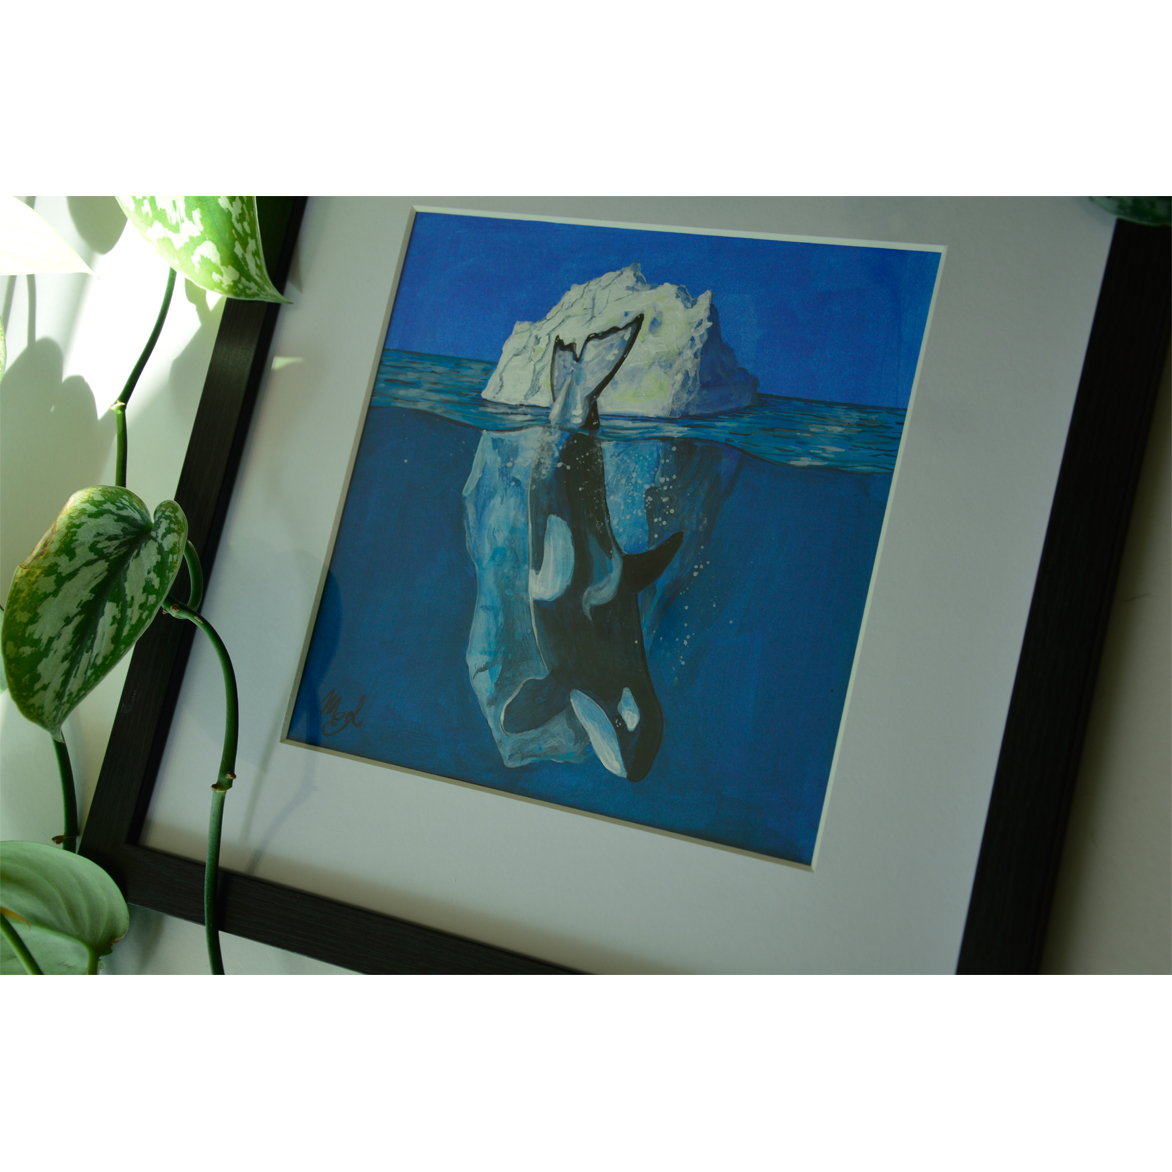 Framed painting in acrylic technique with Arctic subject.